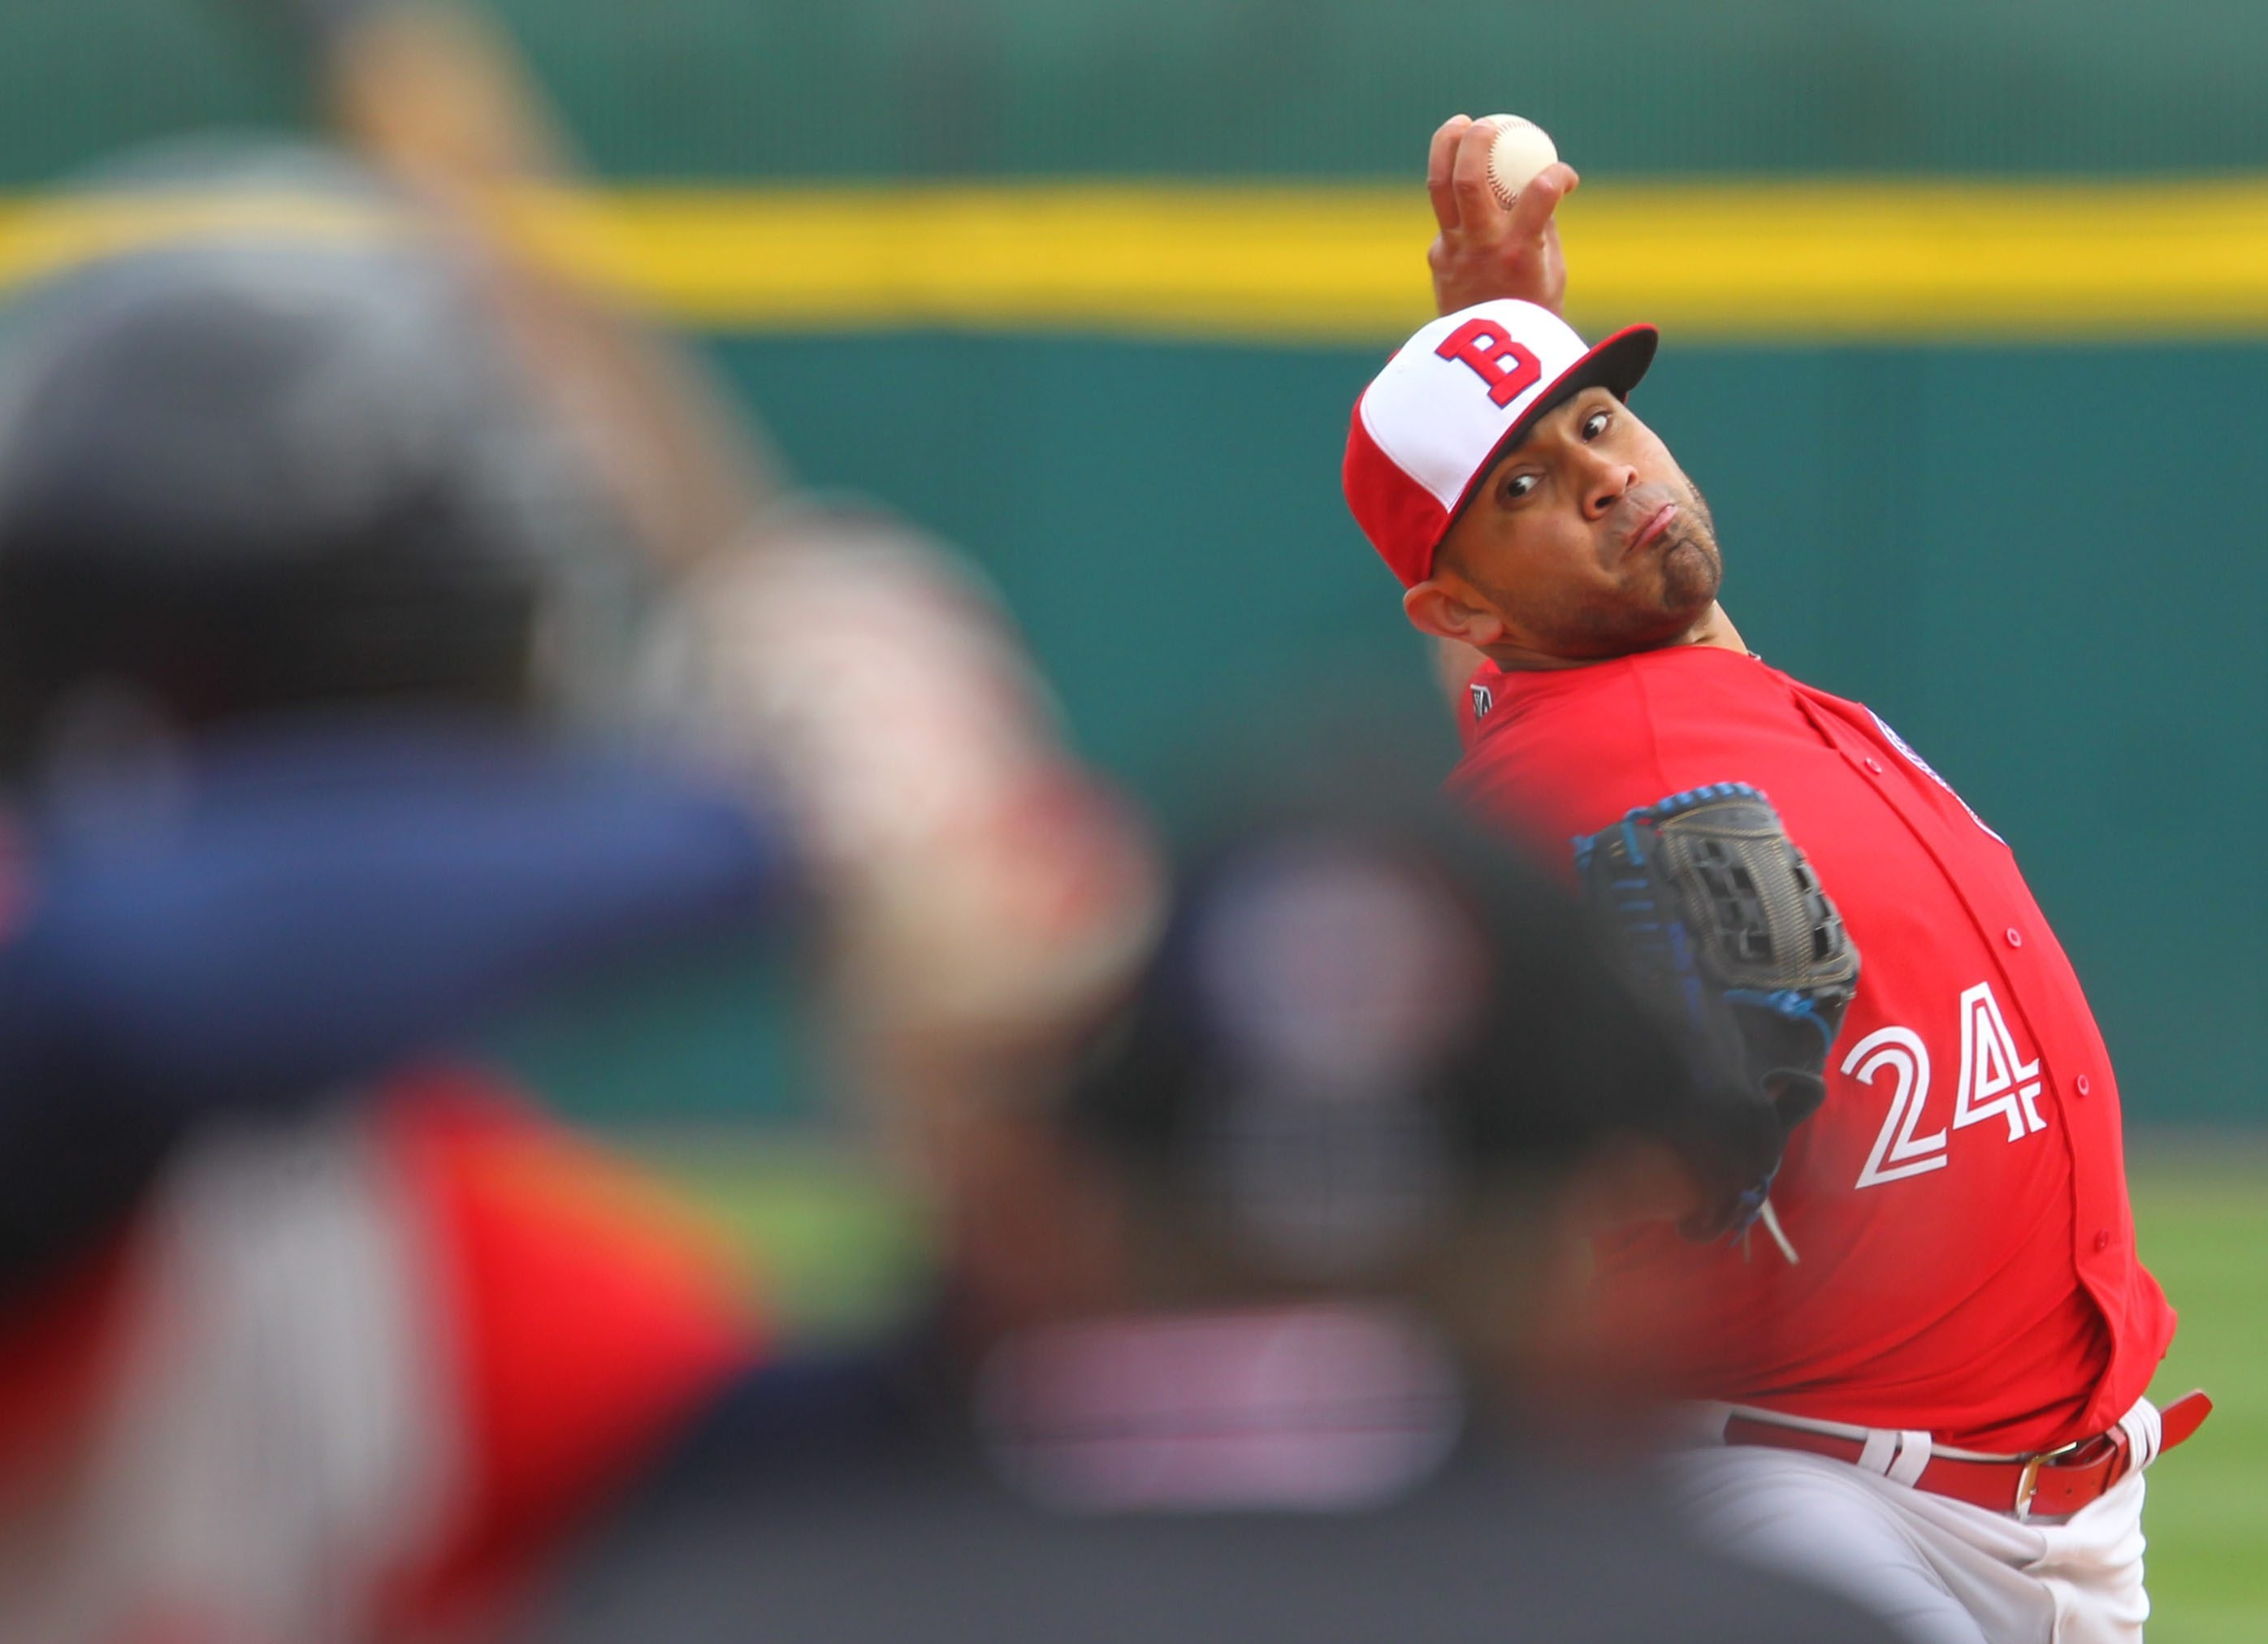 Bisons left-hander Ricky Romero walked five straight batters after getting outs in the second inning against Gwinnett.